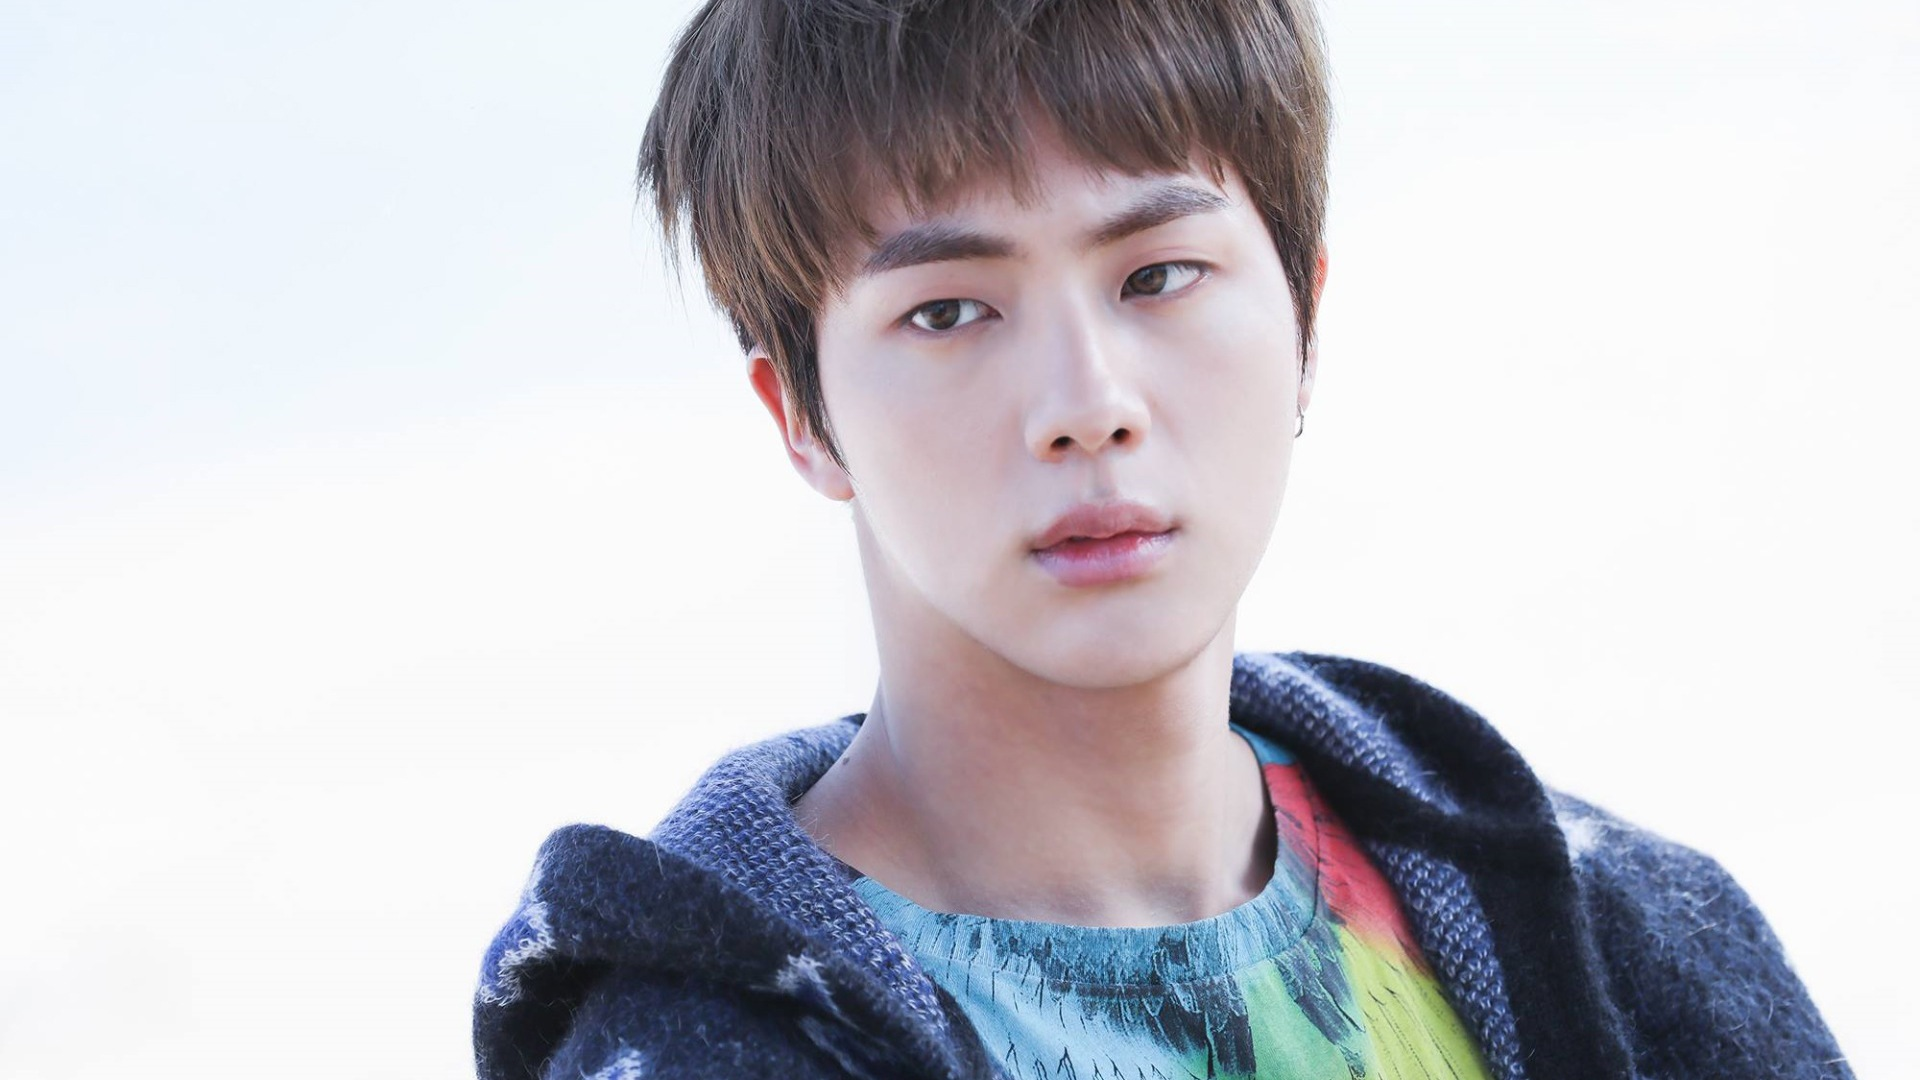 Jin Bts Images Seokjin Hd Wallpaper And Background Photos 40936513